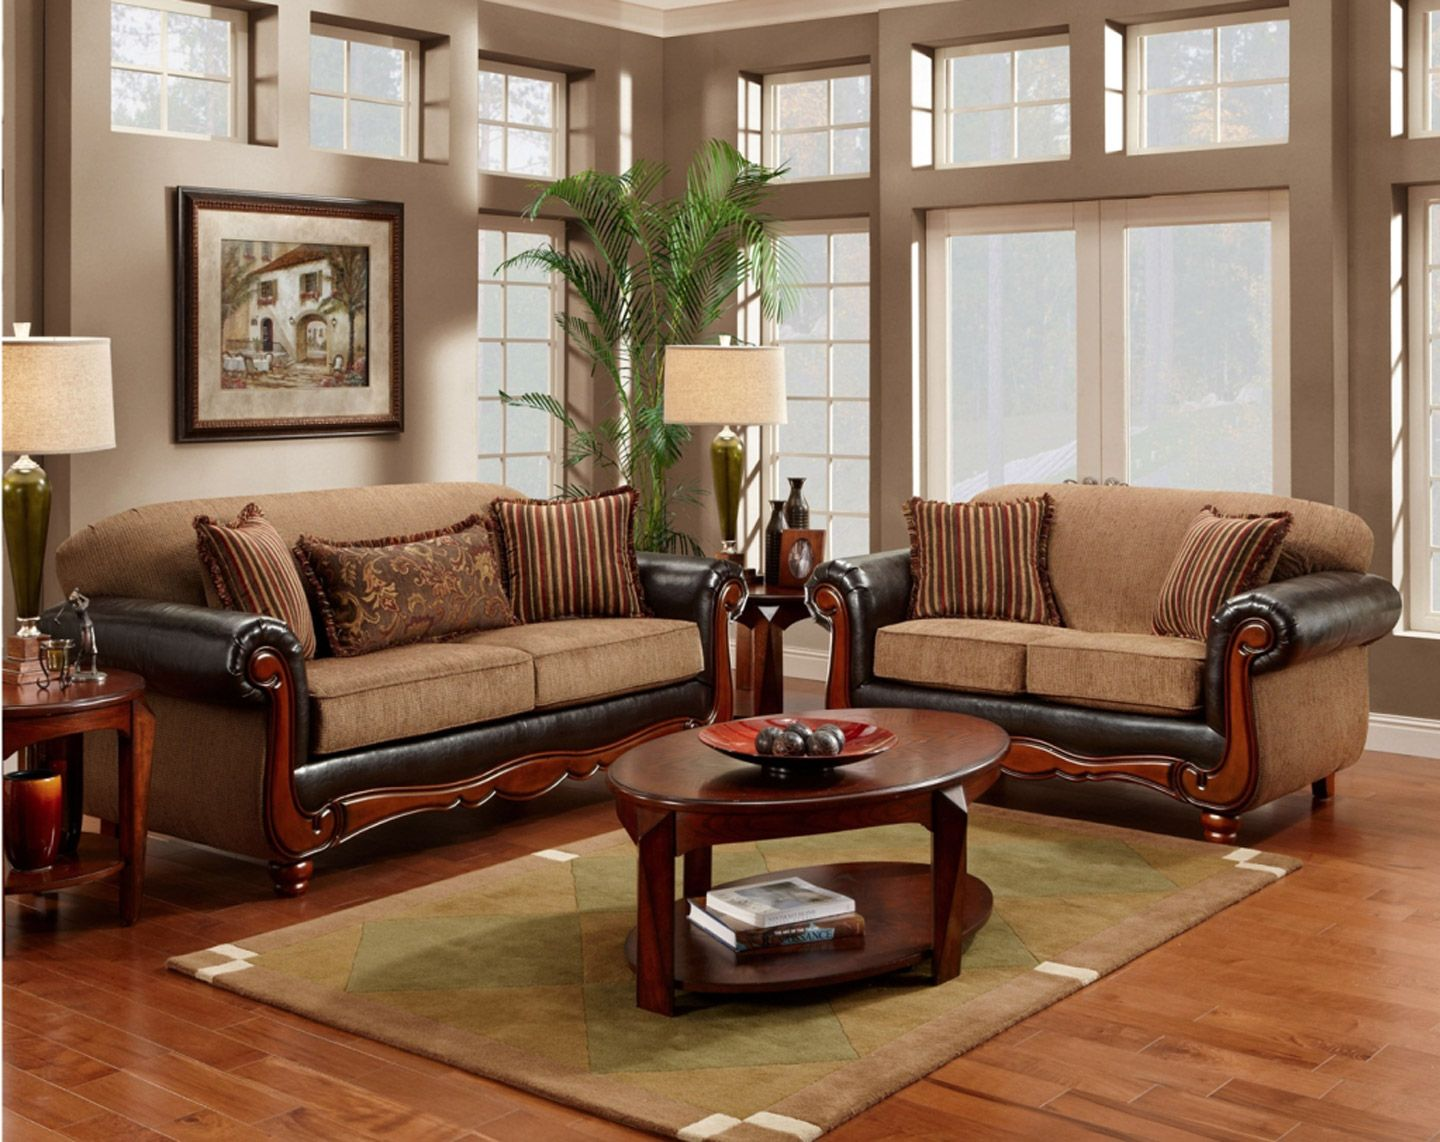 Delectable living room furniture with wood trim design ideas with natural wood sofa set design and